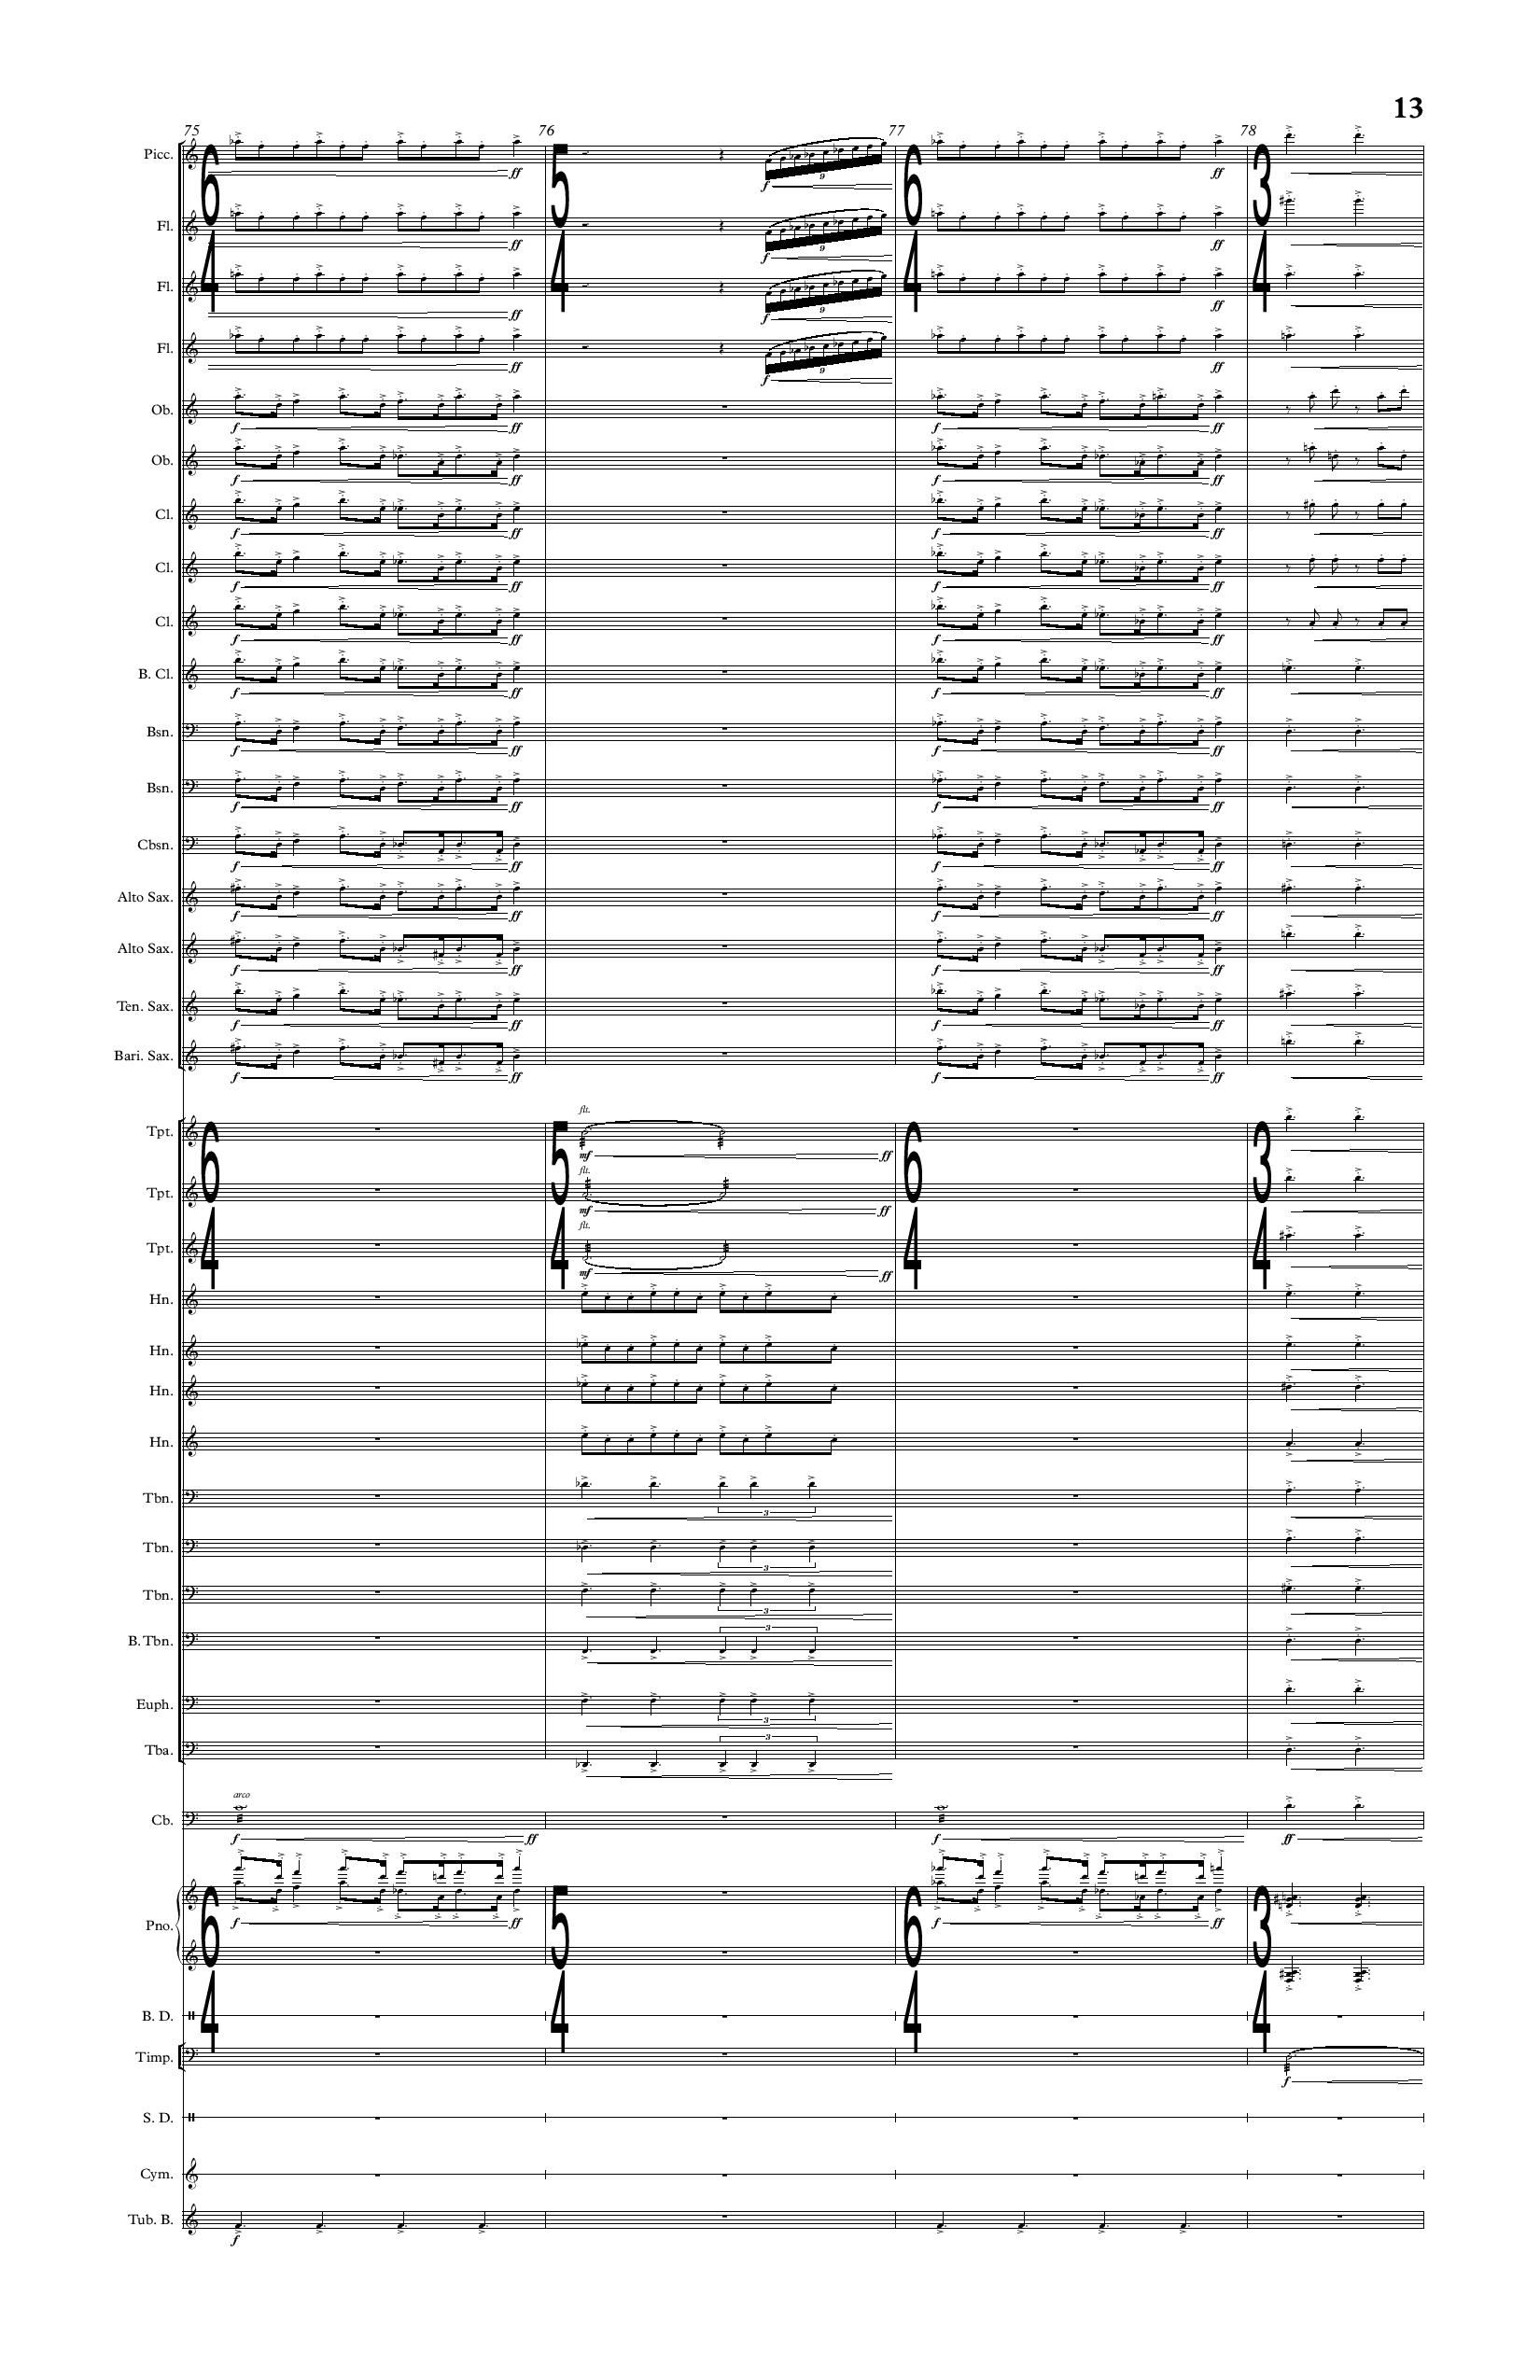 Rupture Full Transposed Score - Full Score (1)-page-013